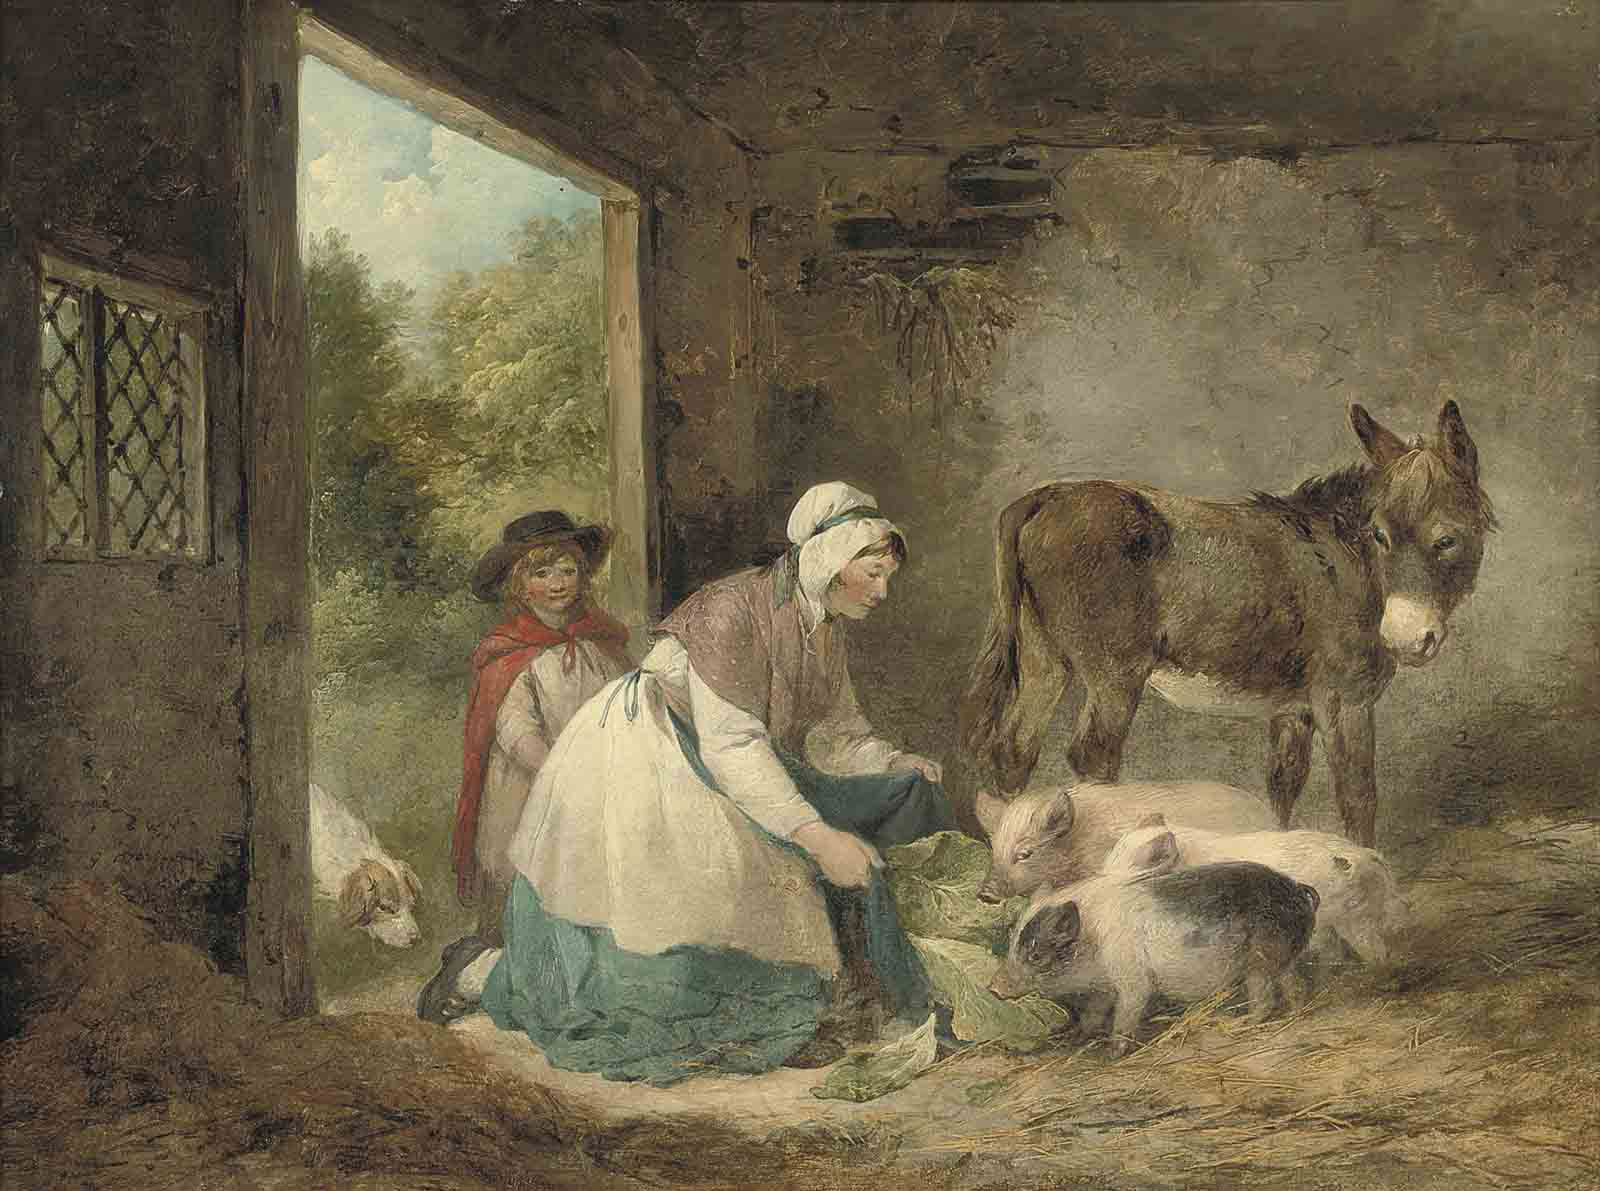 A woman and child feeding pigs in a stable, with a dog and a donkey